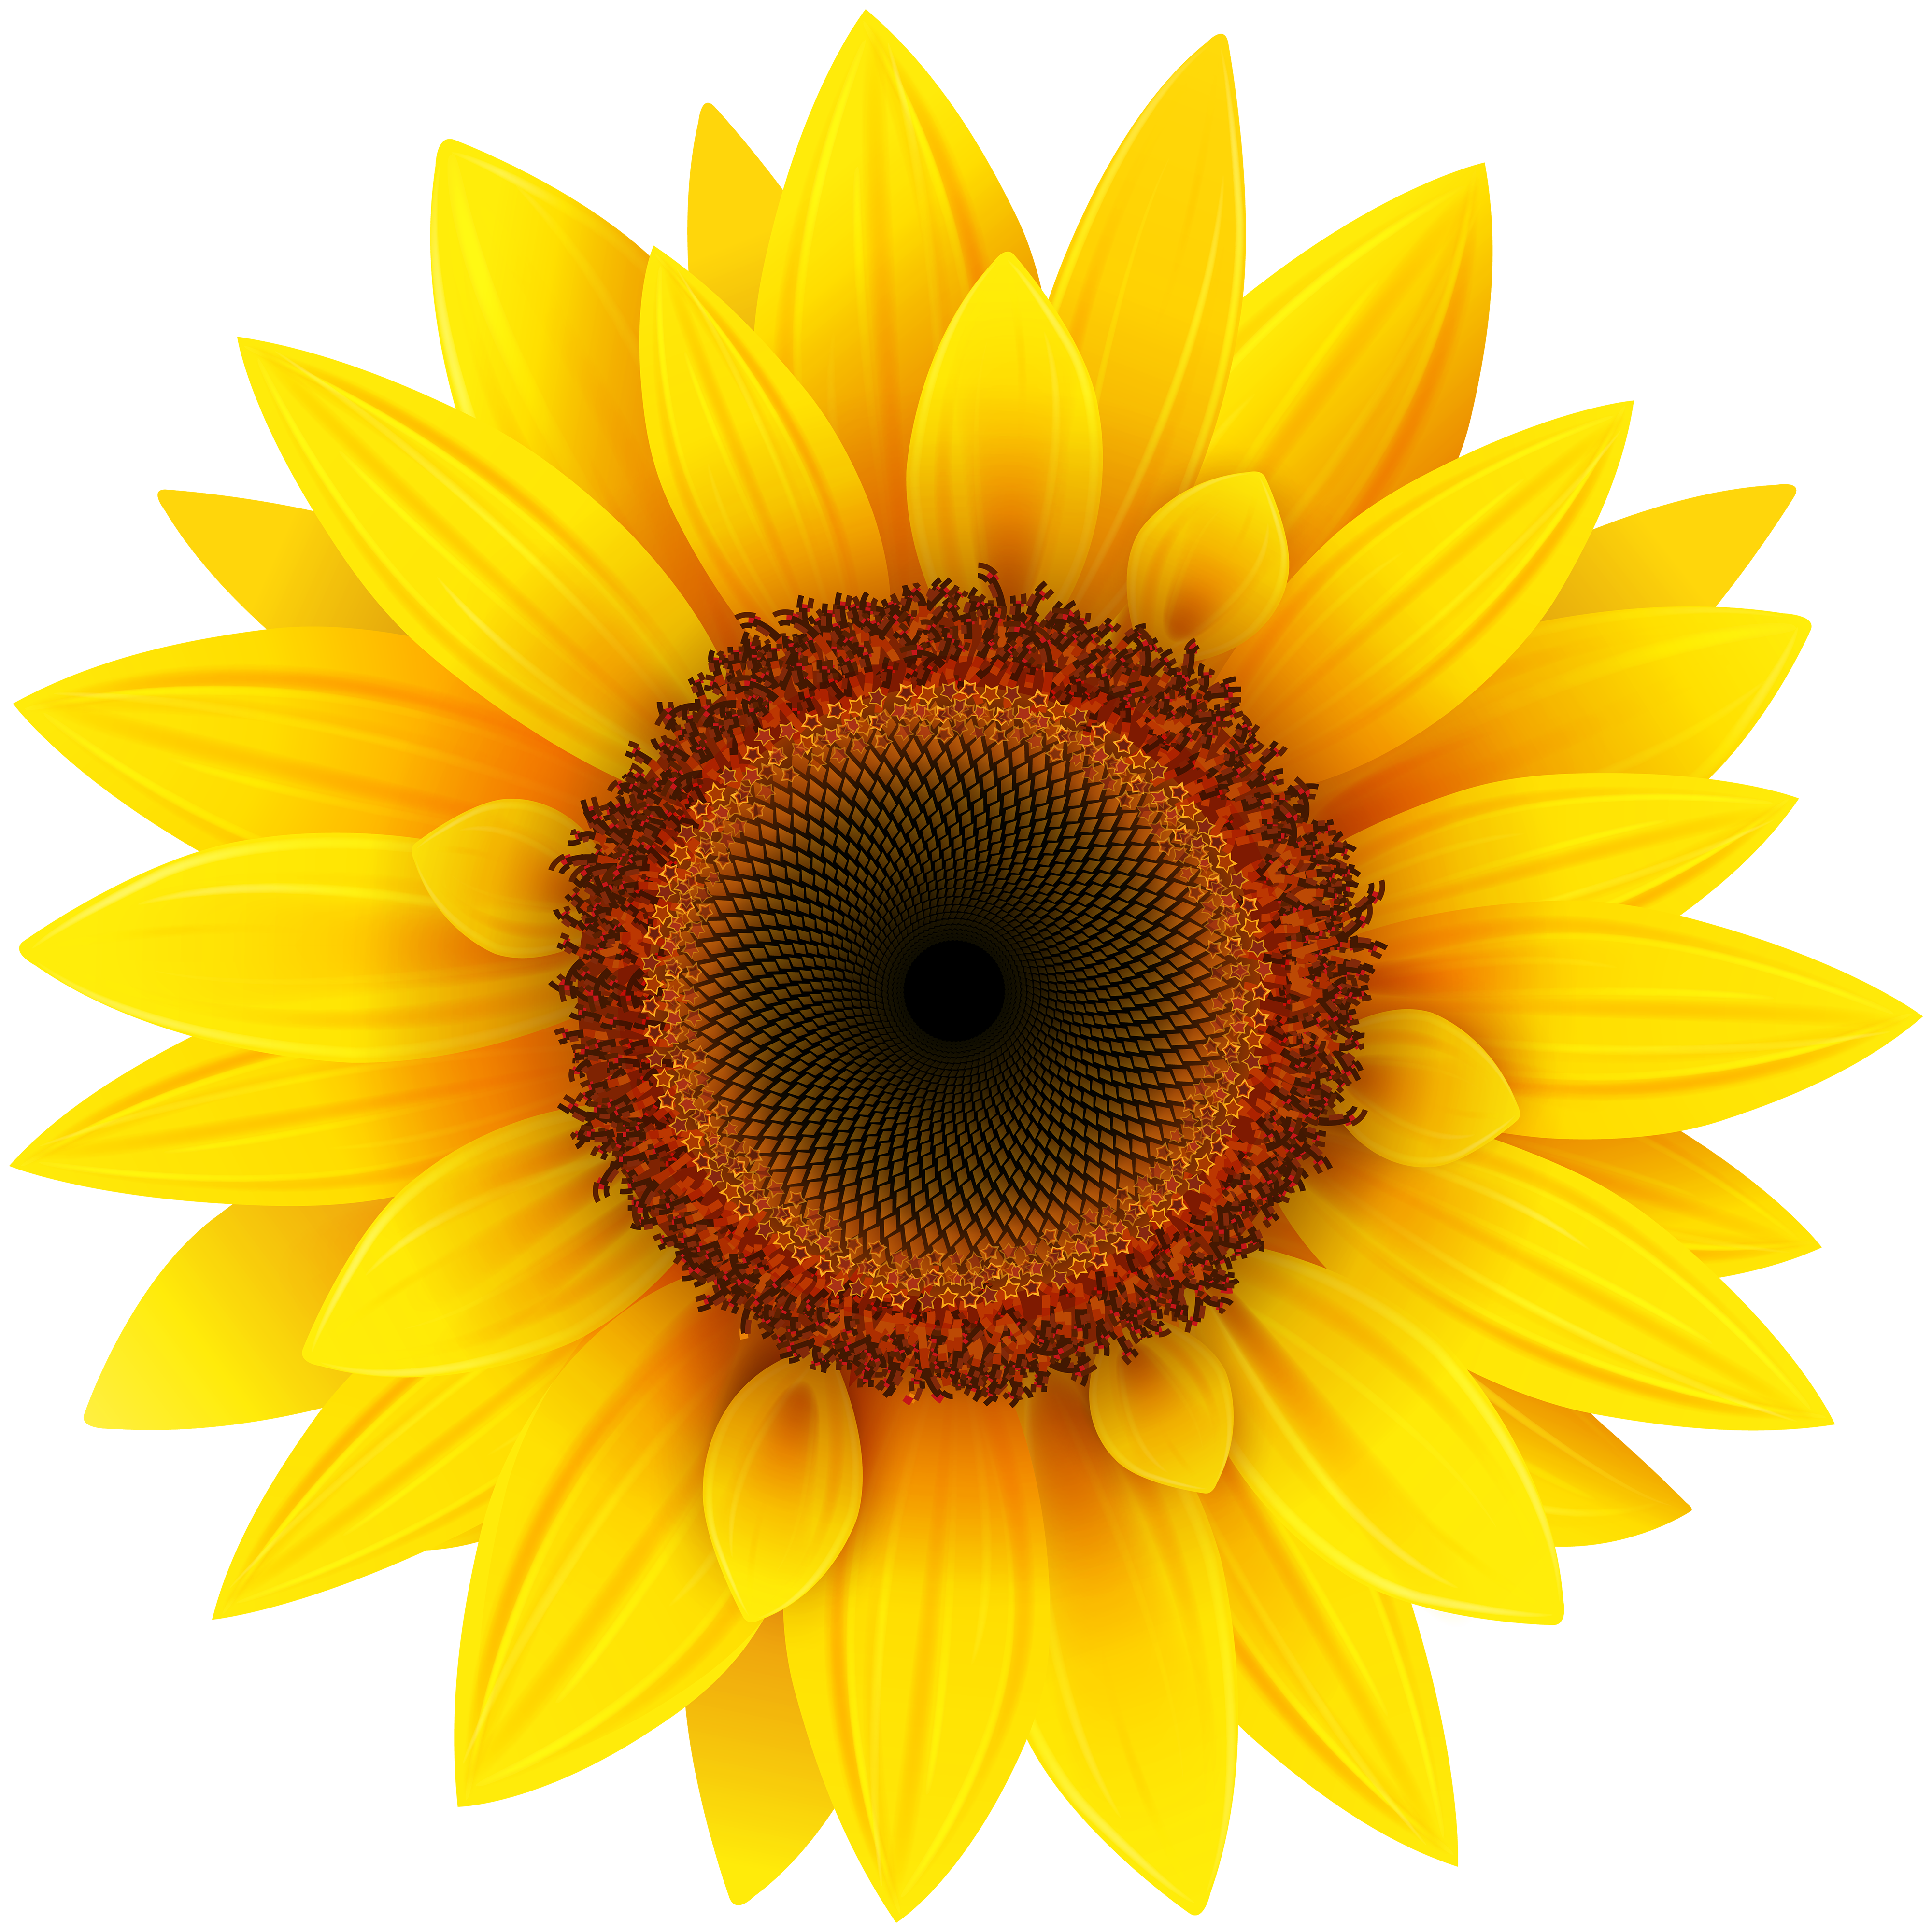 Sunflower clipart transparent svg library download Pin by romany on rpg | Sunflower clipart, Sunflower png ... svg library download